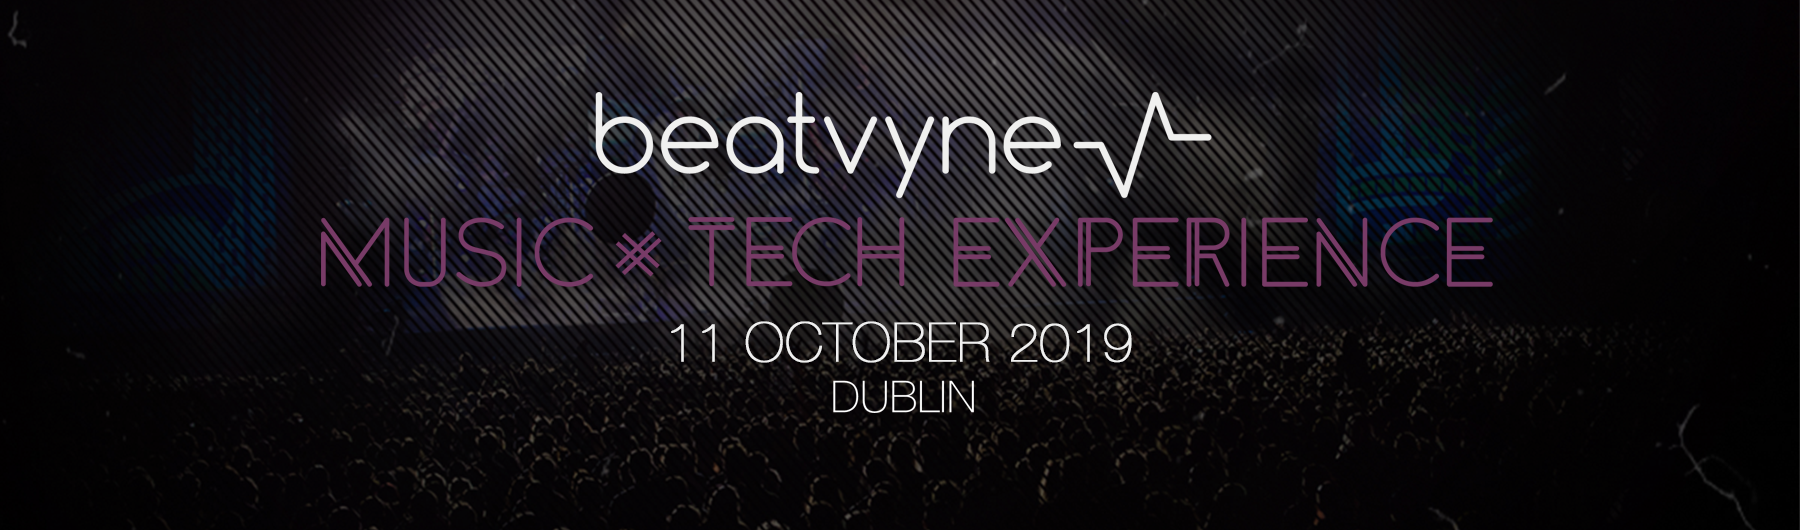 beatvyne's Music x Tech Experience 2019